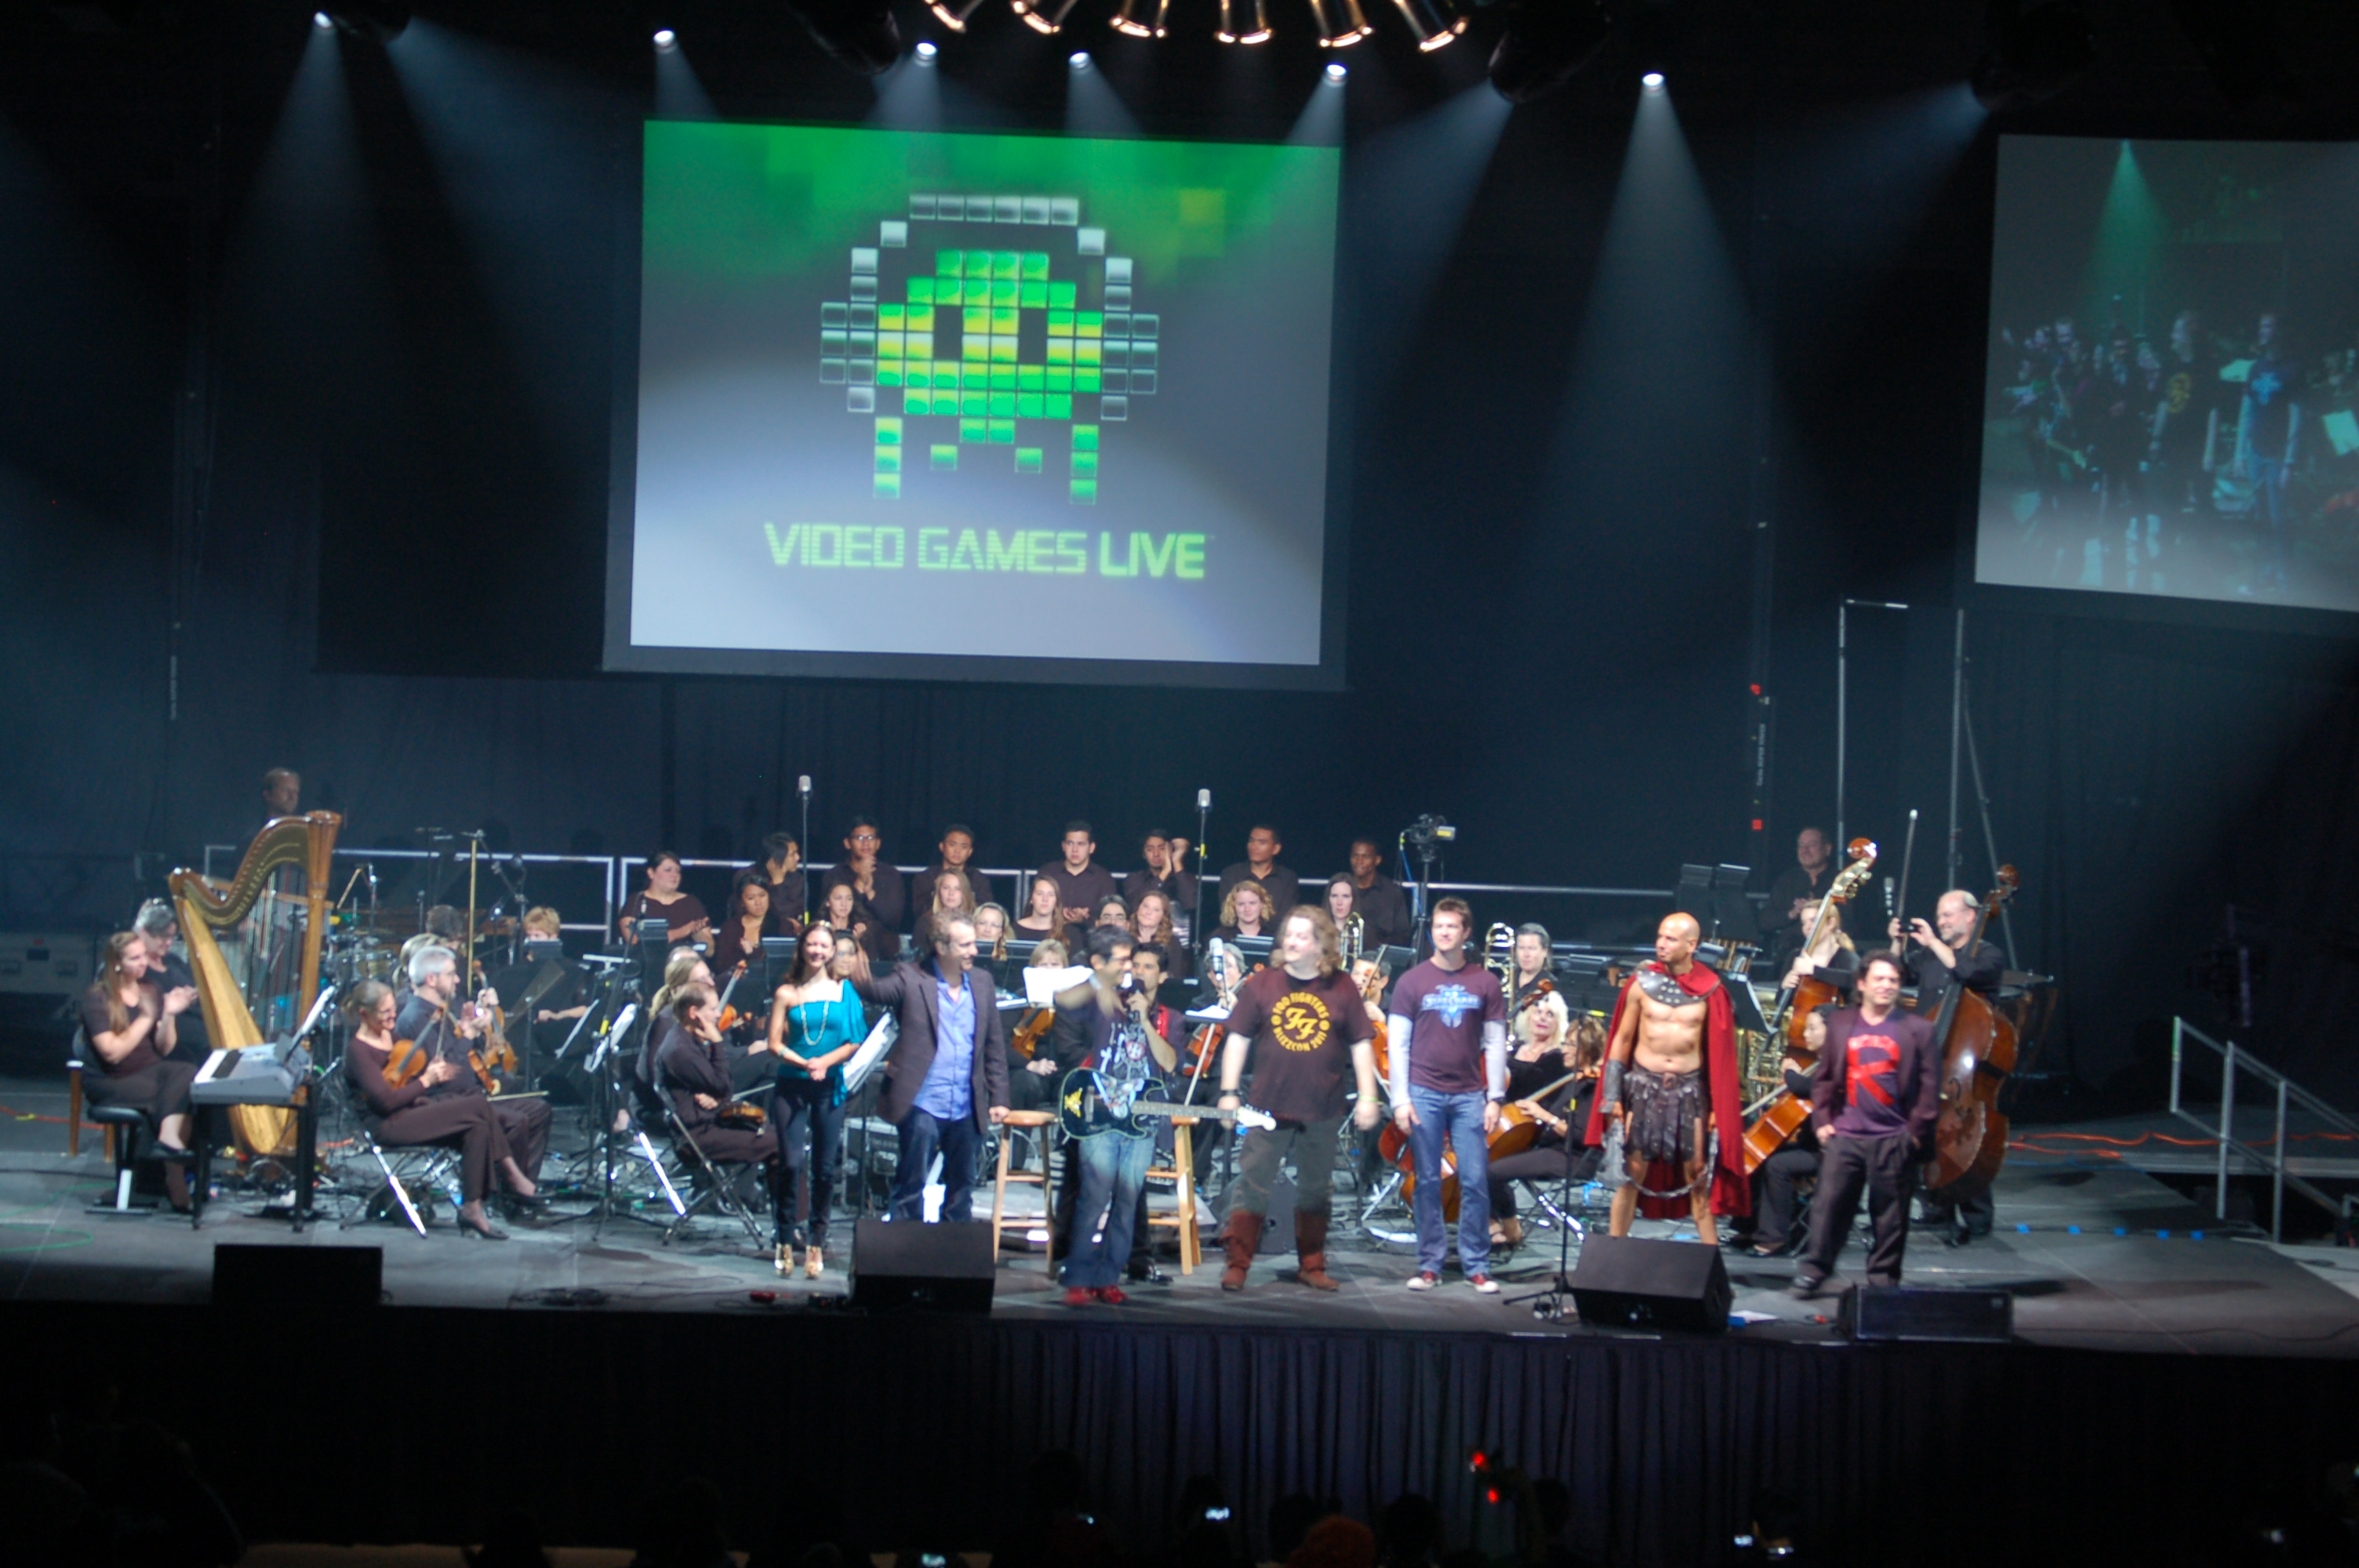 Video Games Live takes CSUSB to the next level